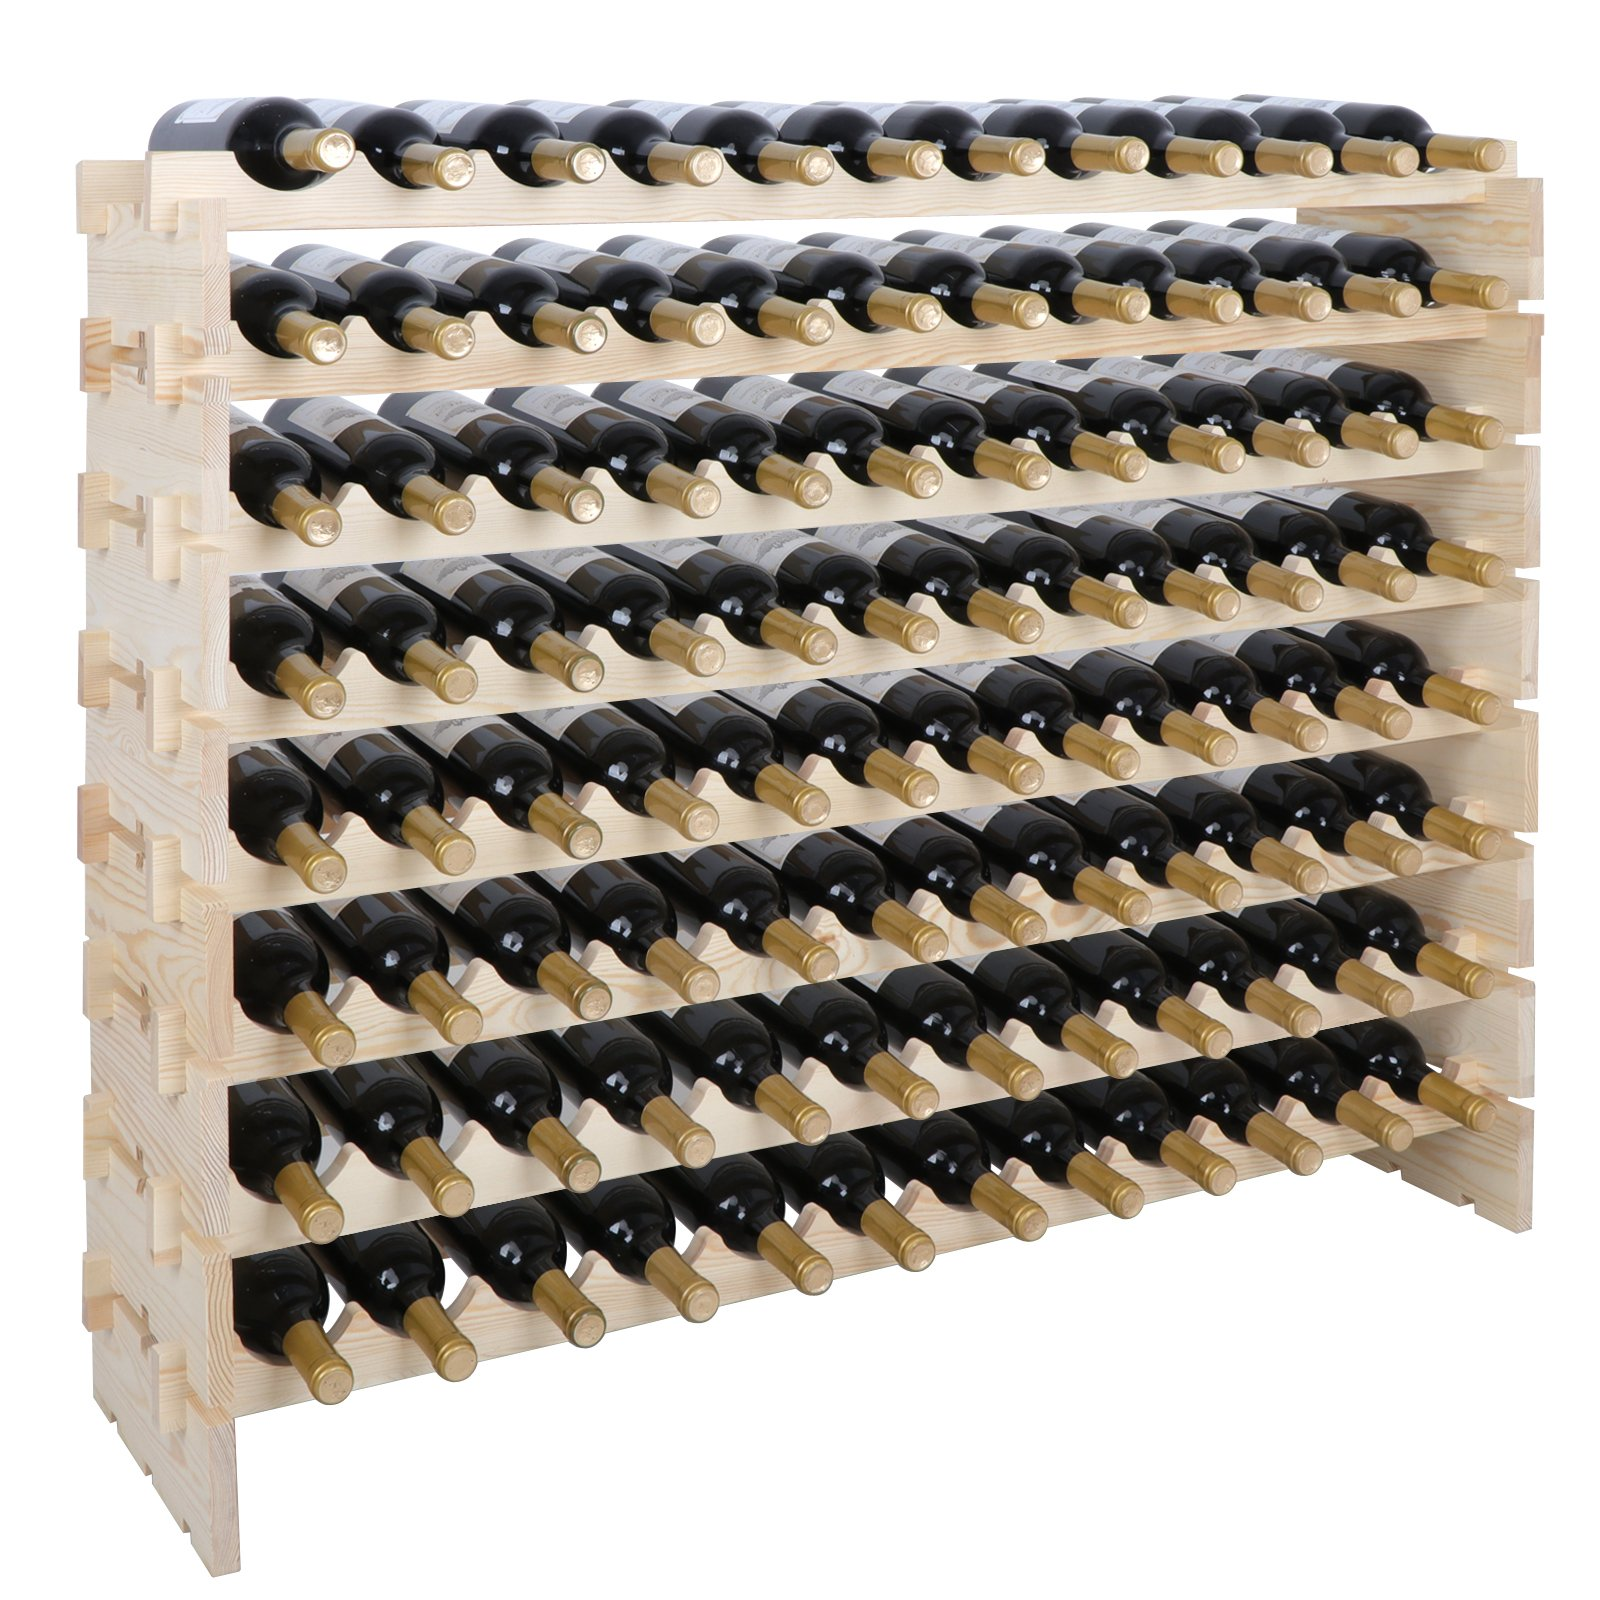 Smartxchoices 96 Bottle Stackable Modular Wine Rack Wooden Wine Storage Rack Free Standing Wine Holder Display Shelves, Wobble-Free, Solid Wood, (8 Row, 96 Bottle Capacity) (96 Bottle)